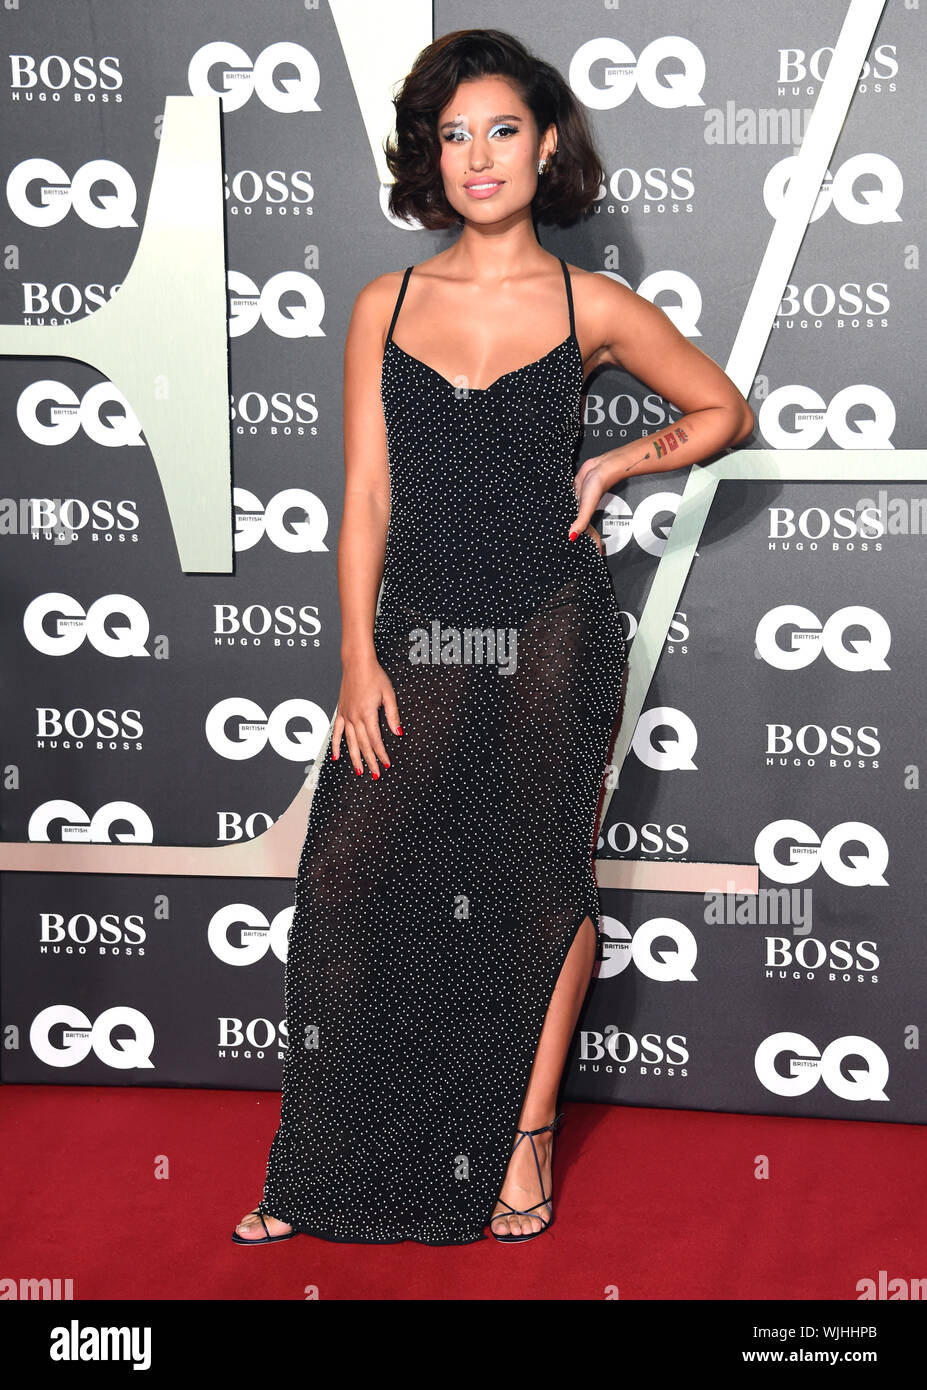 Raye arriving at the GQ Men of the Year Awards 2019 in association with Hugo Boss, held at the Tate Modern in London. - Stock Photo